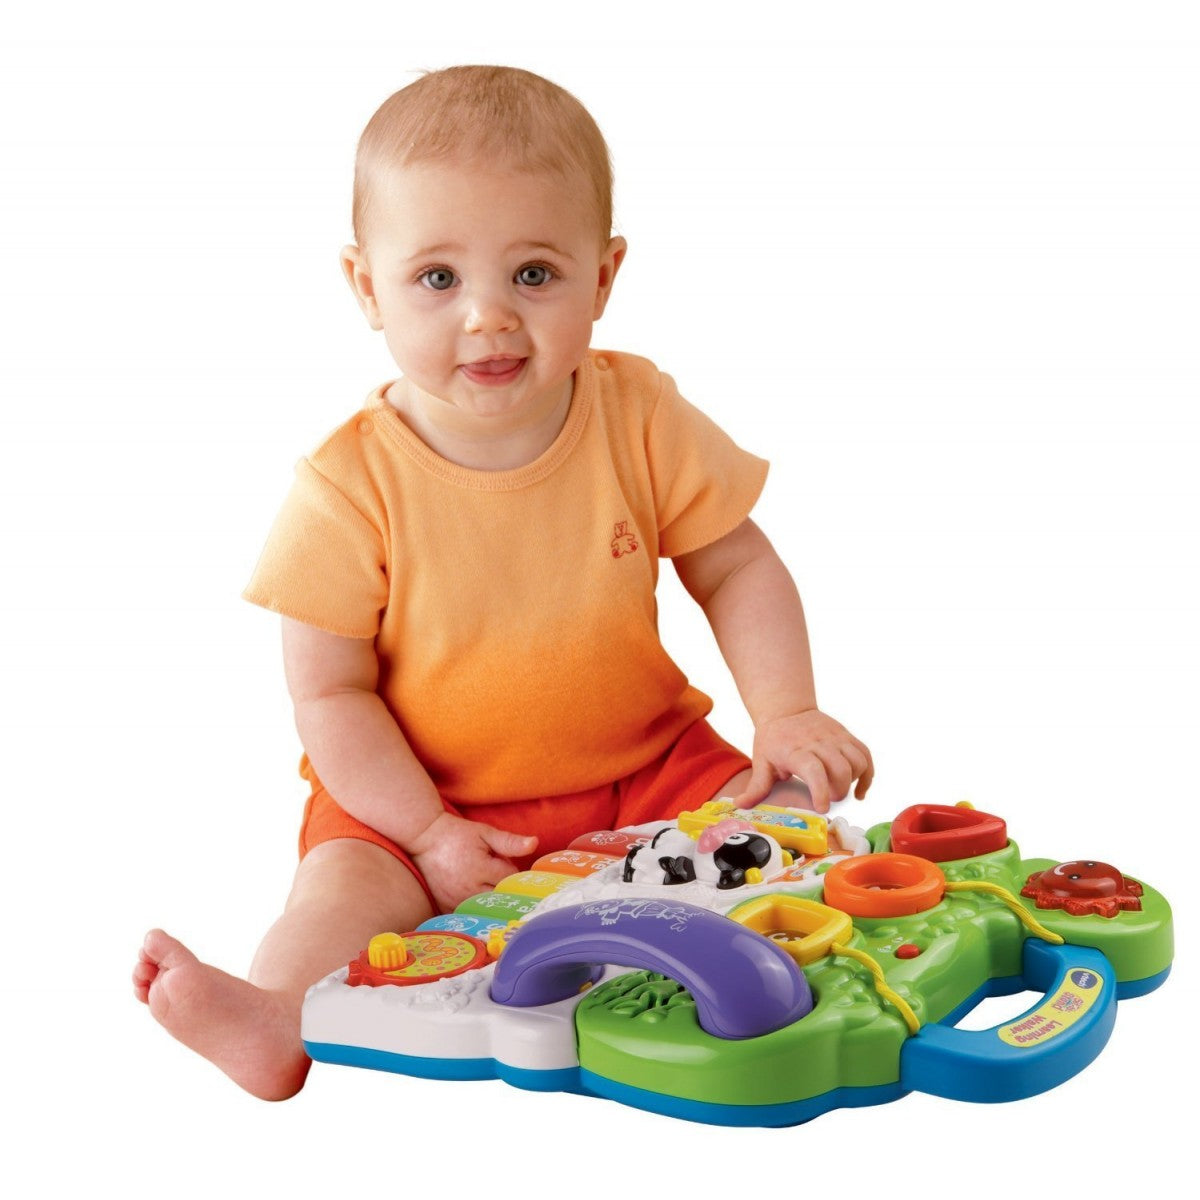 Human, Baby Toys Simple Ways to Make Your Baby Smarter